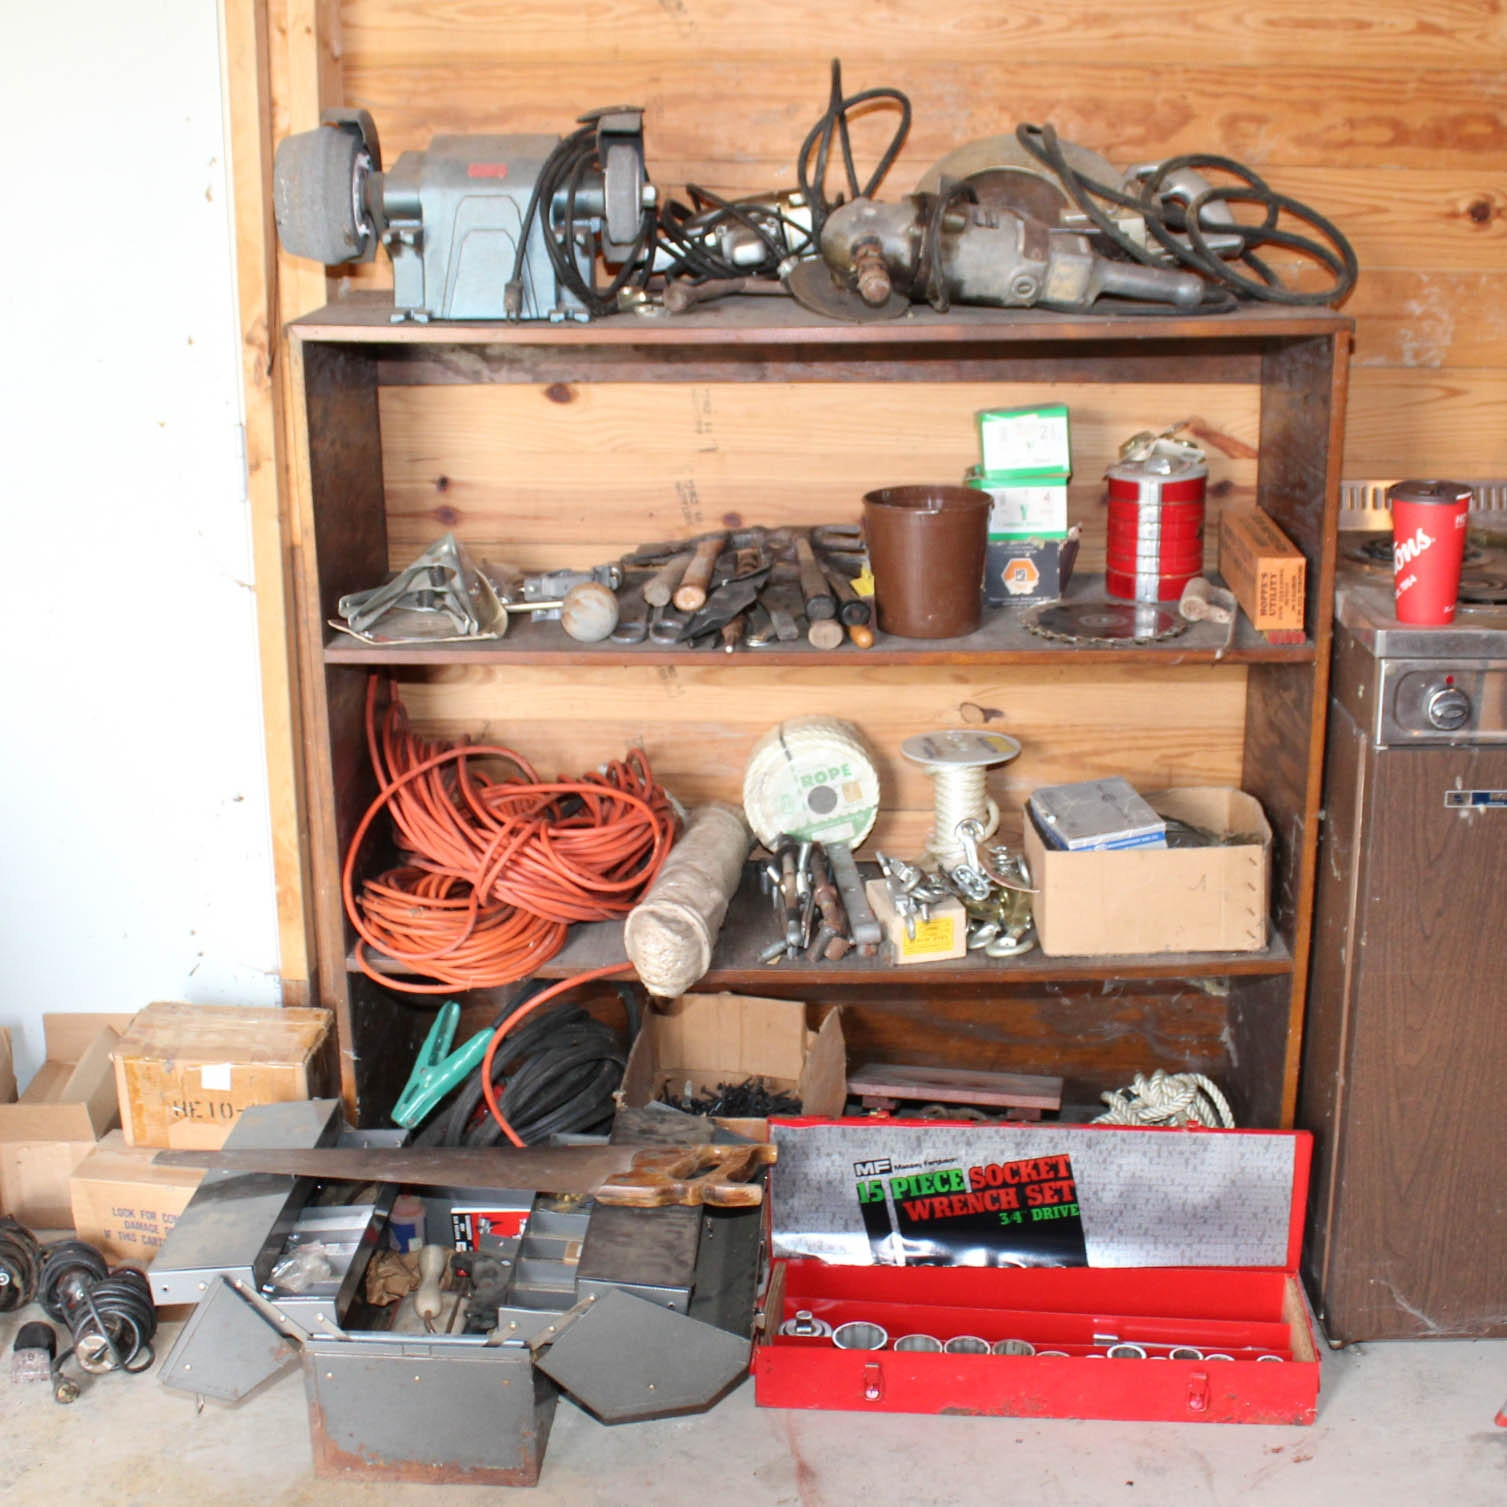 Vintage Power Tools, Hand Tools, and Workshop Accessories